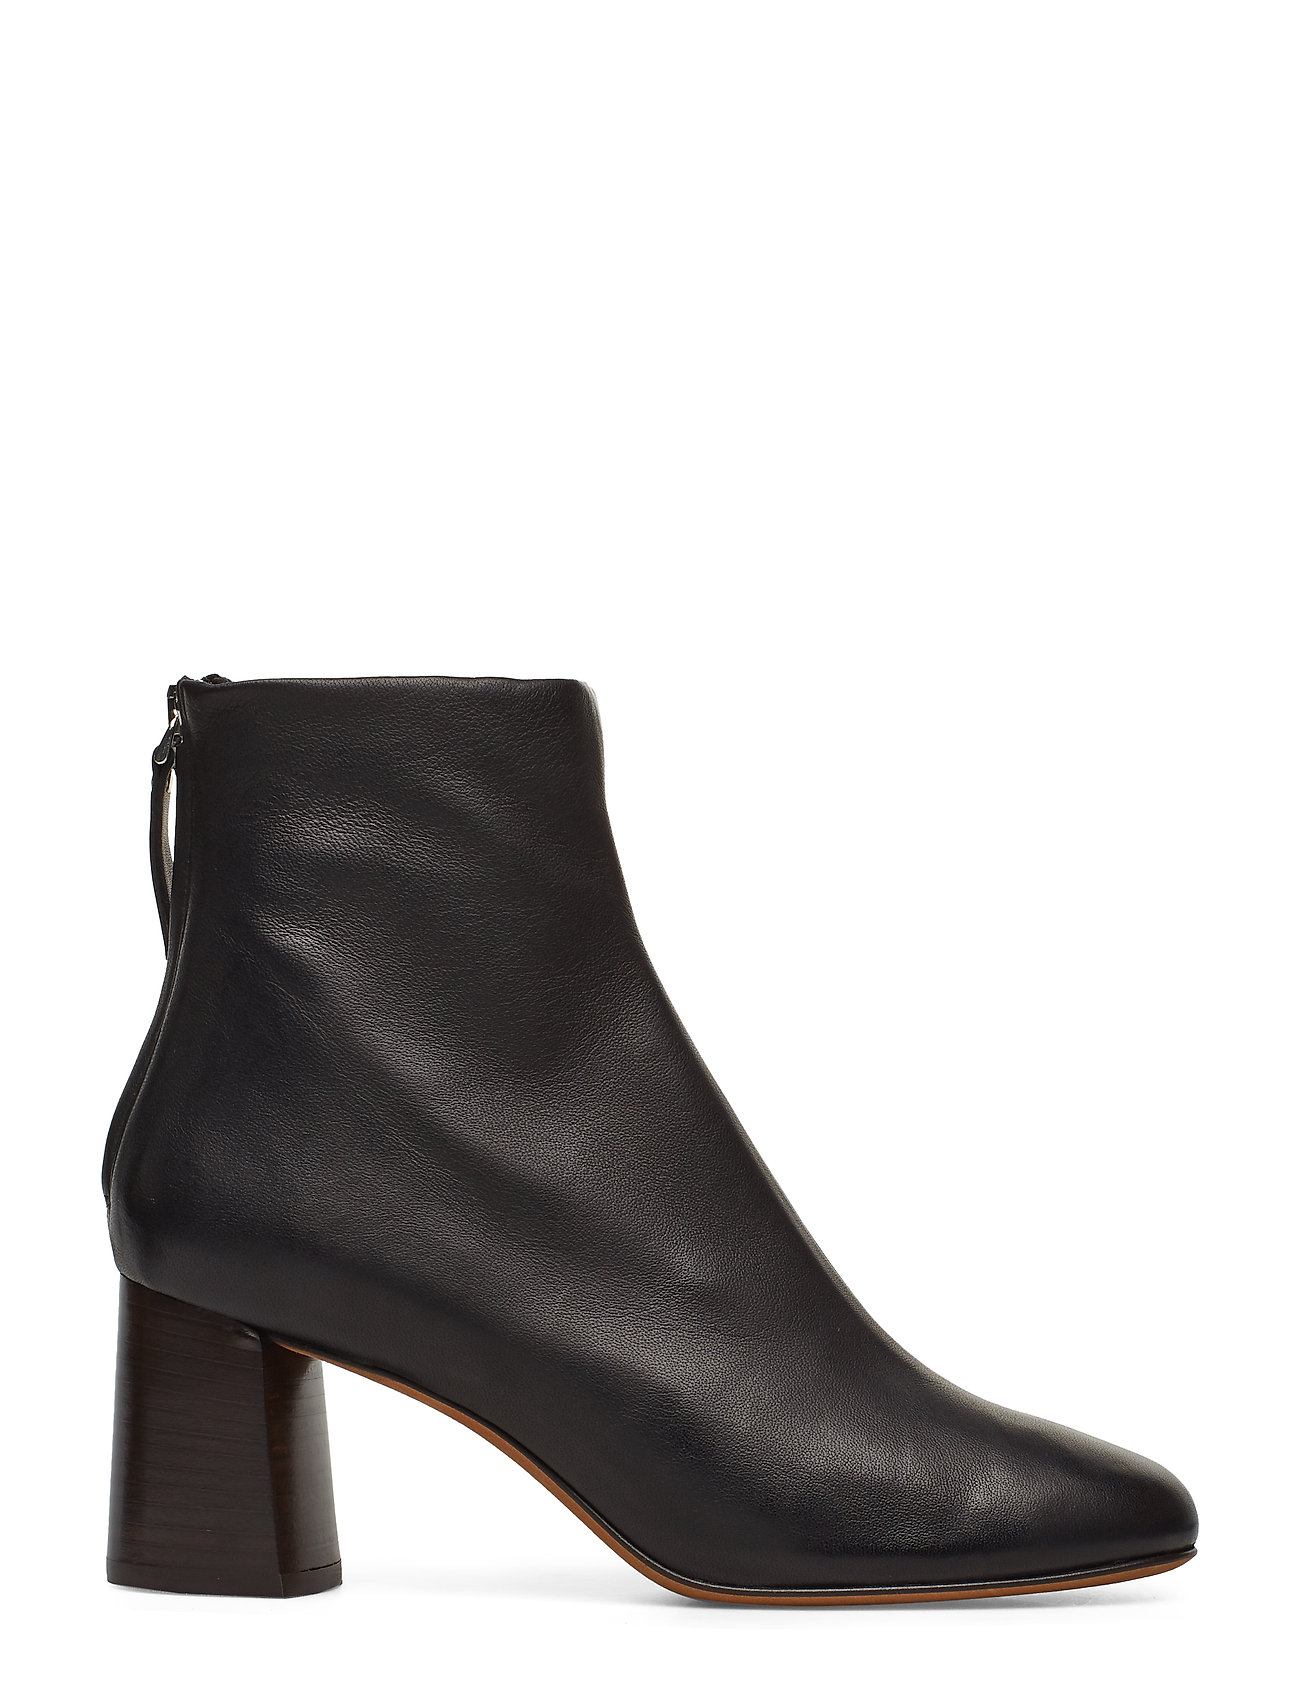 Nadia - Soft Heel Boot Shoes Boots Ankle Boots Ankle Boot - Heel Sort 3.1 Phillip Lim